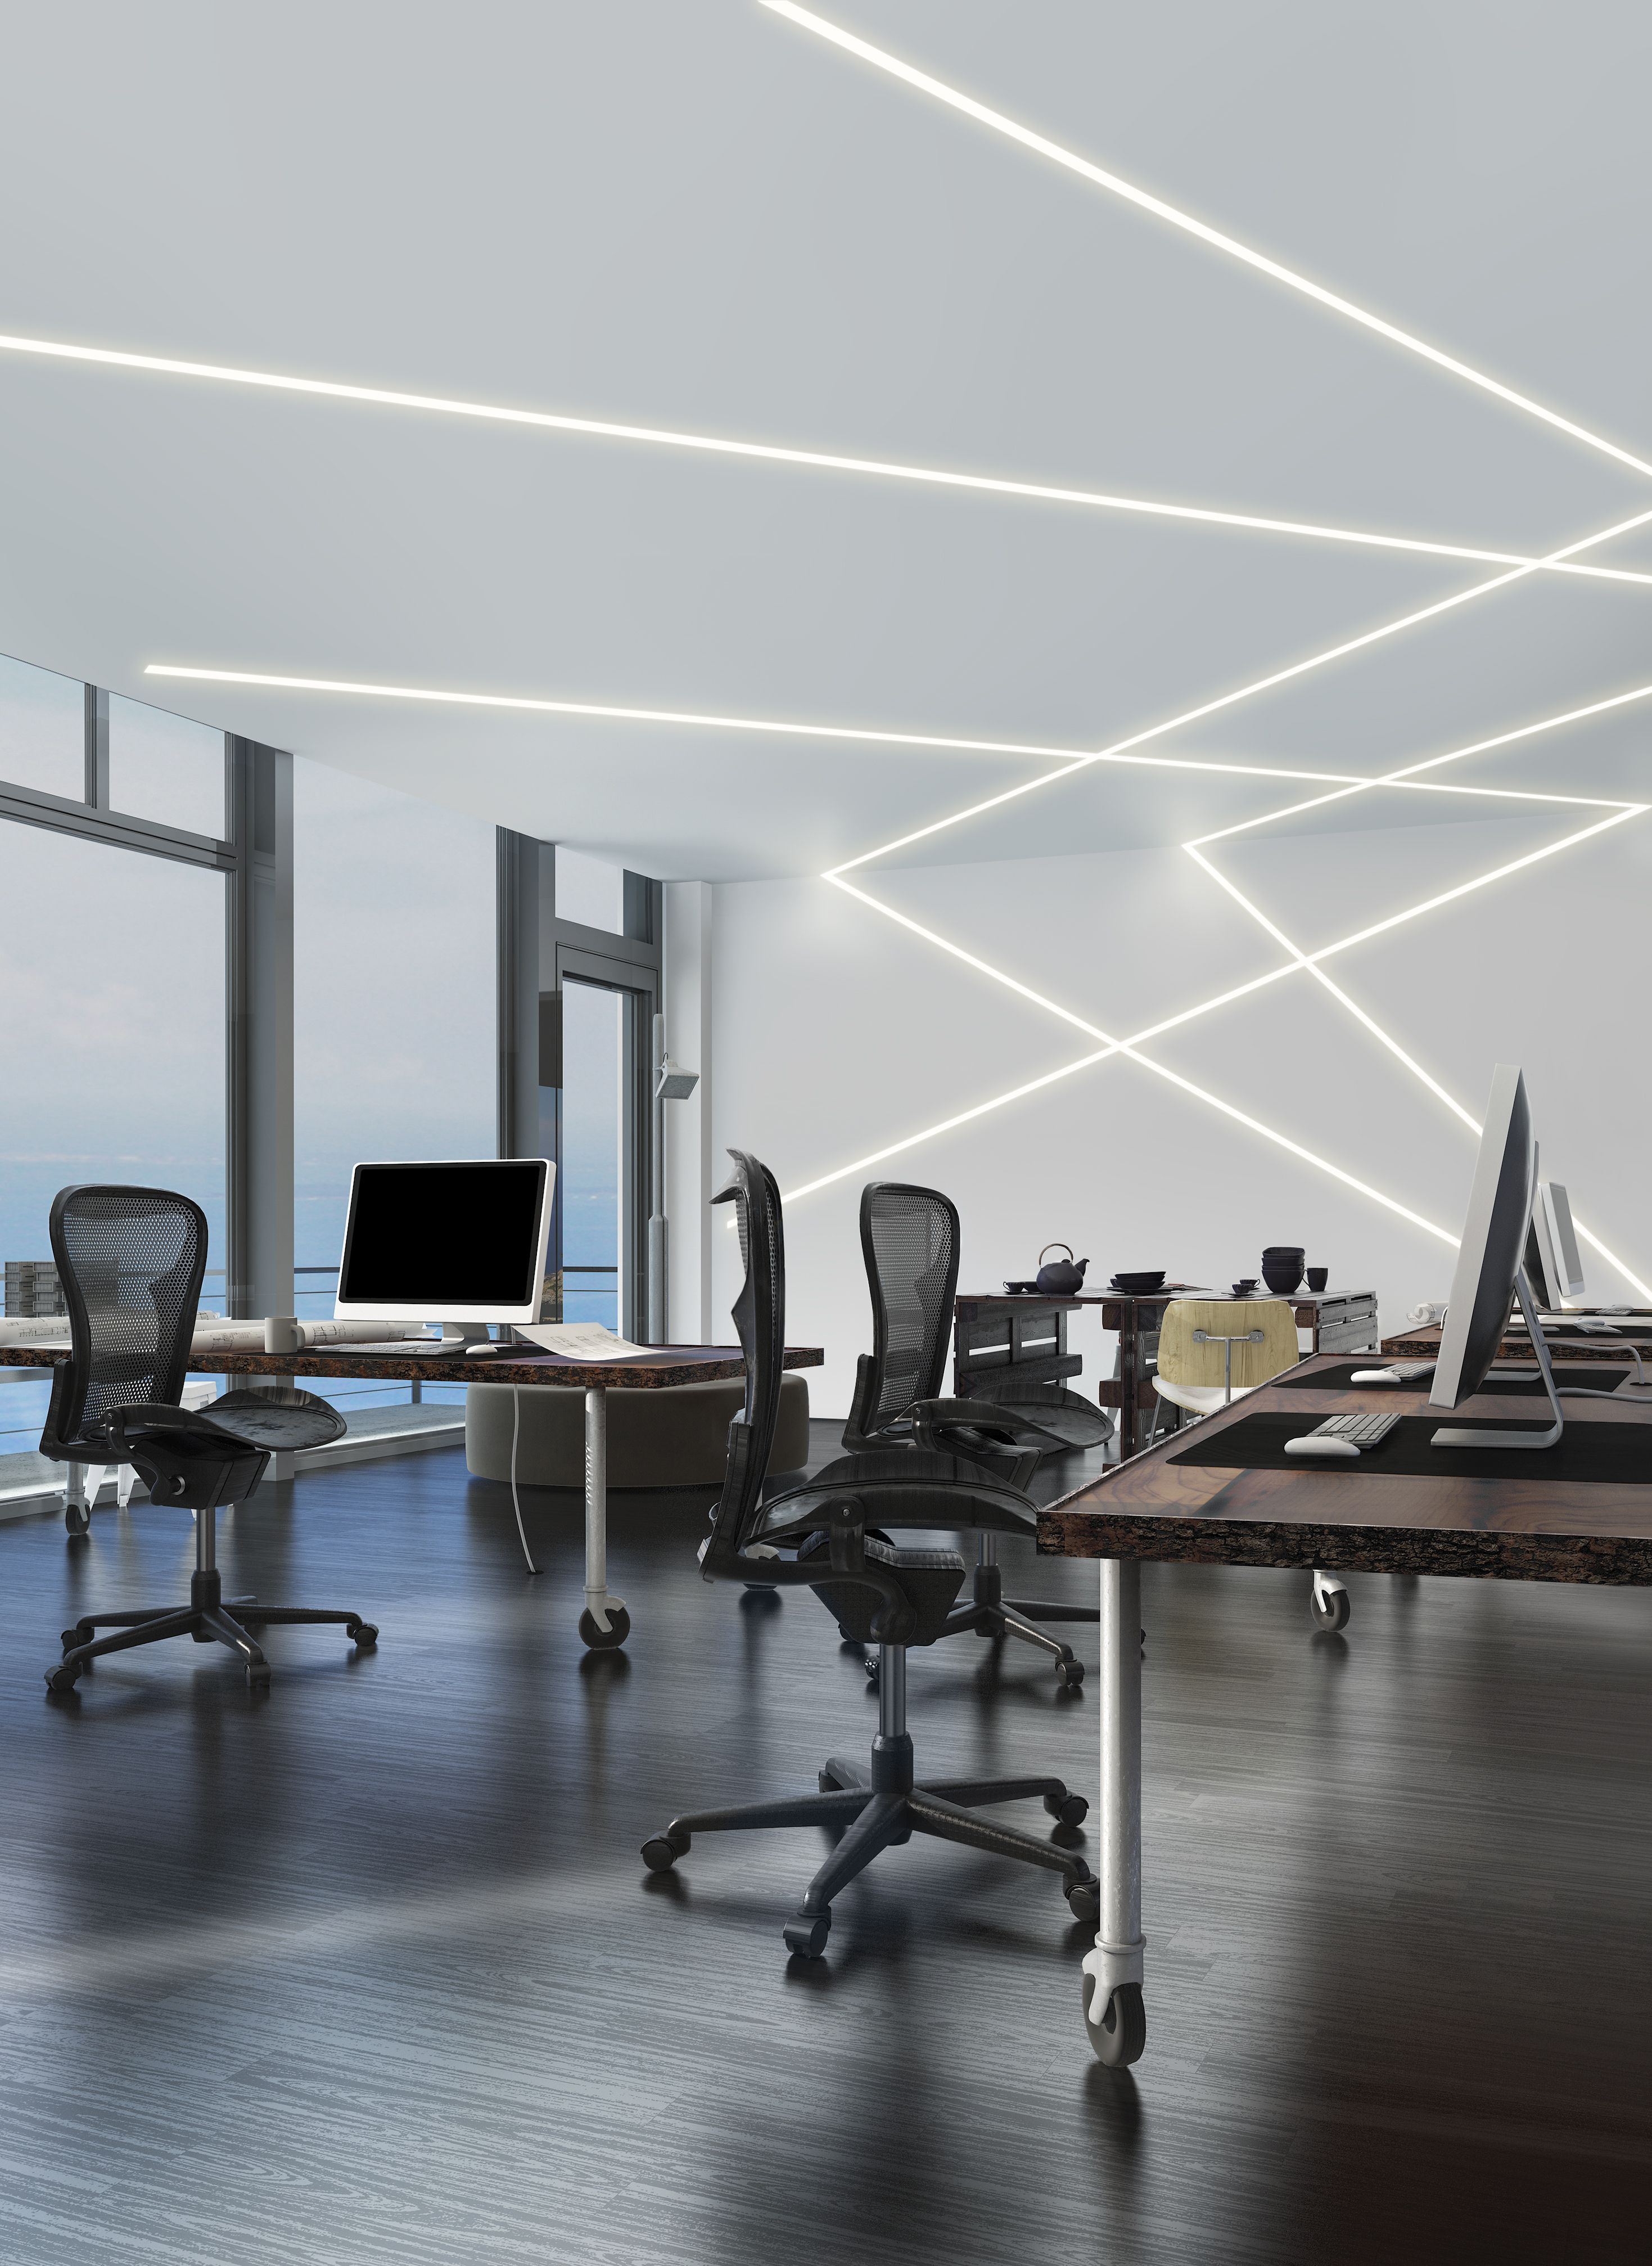 Office Lighting Options Bedroom And Living Room Image